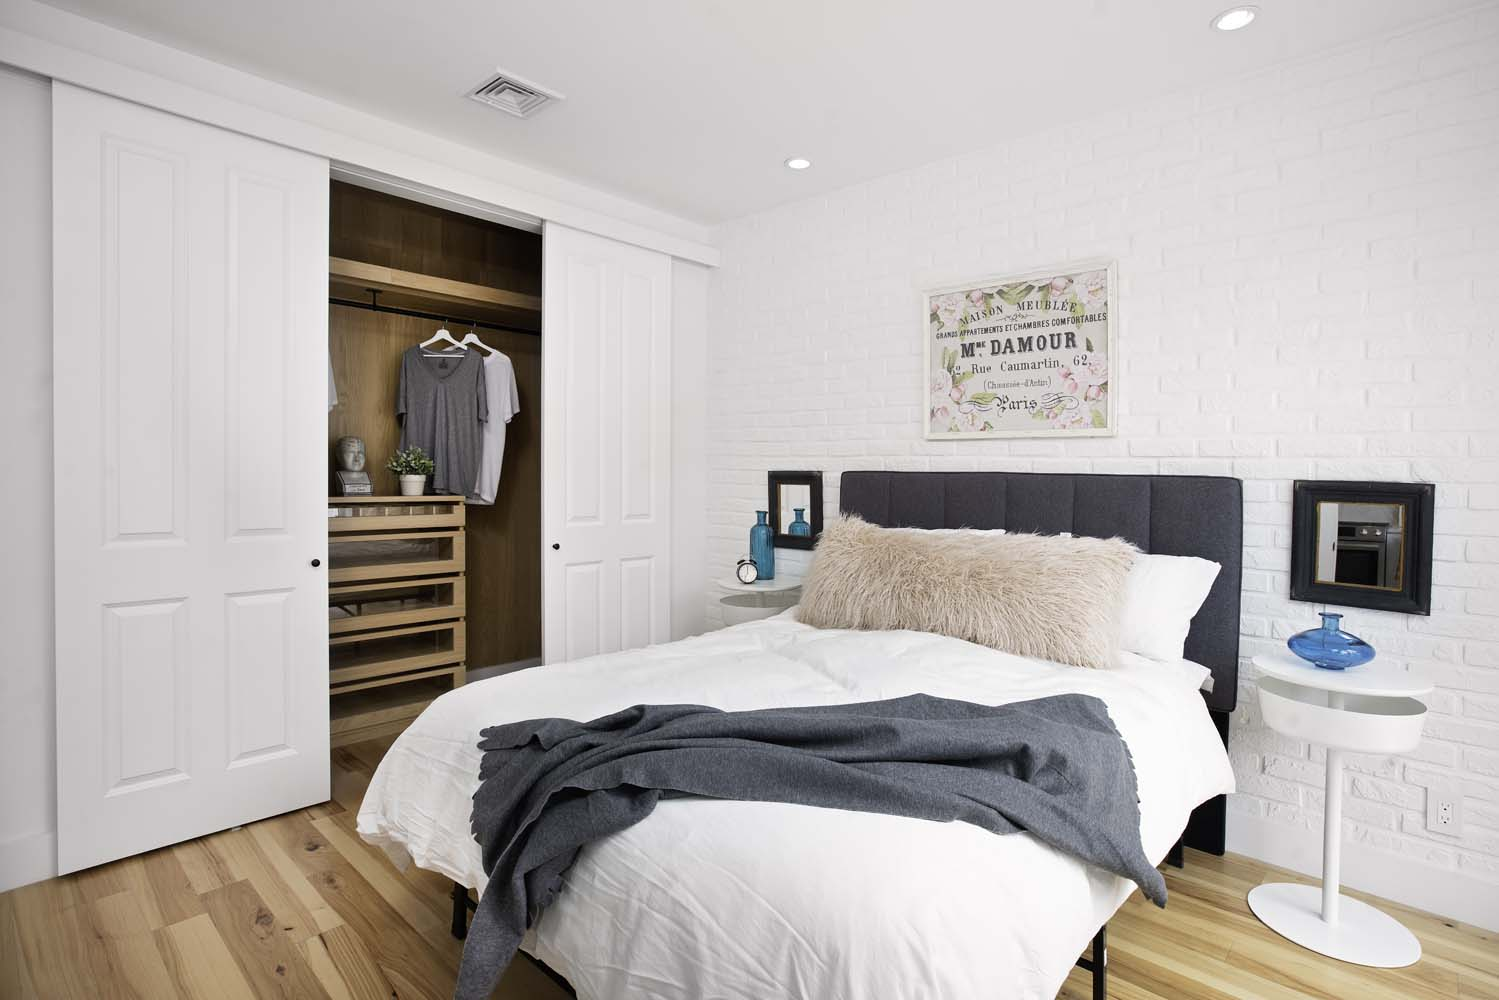 The bEDROOM that fits a king bed - Where dreams happen…